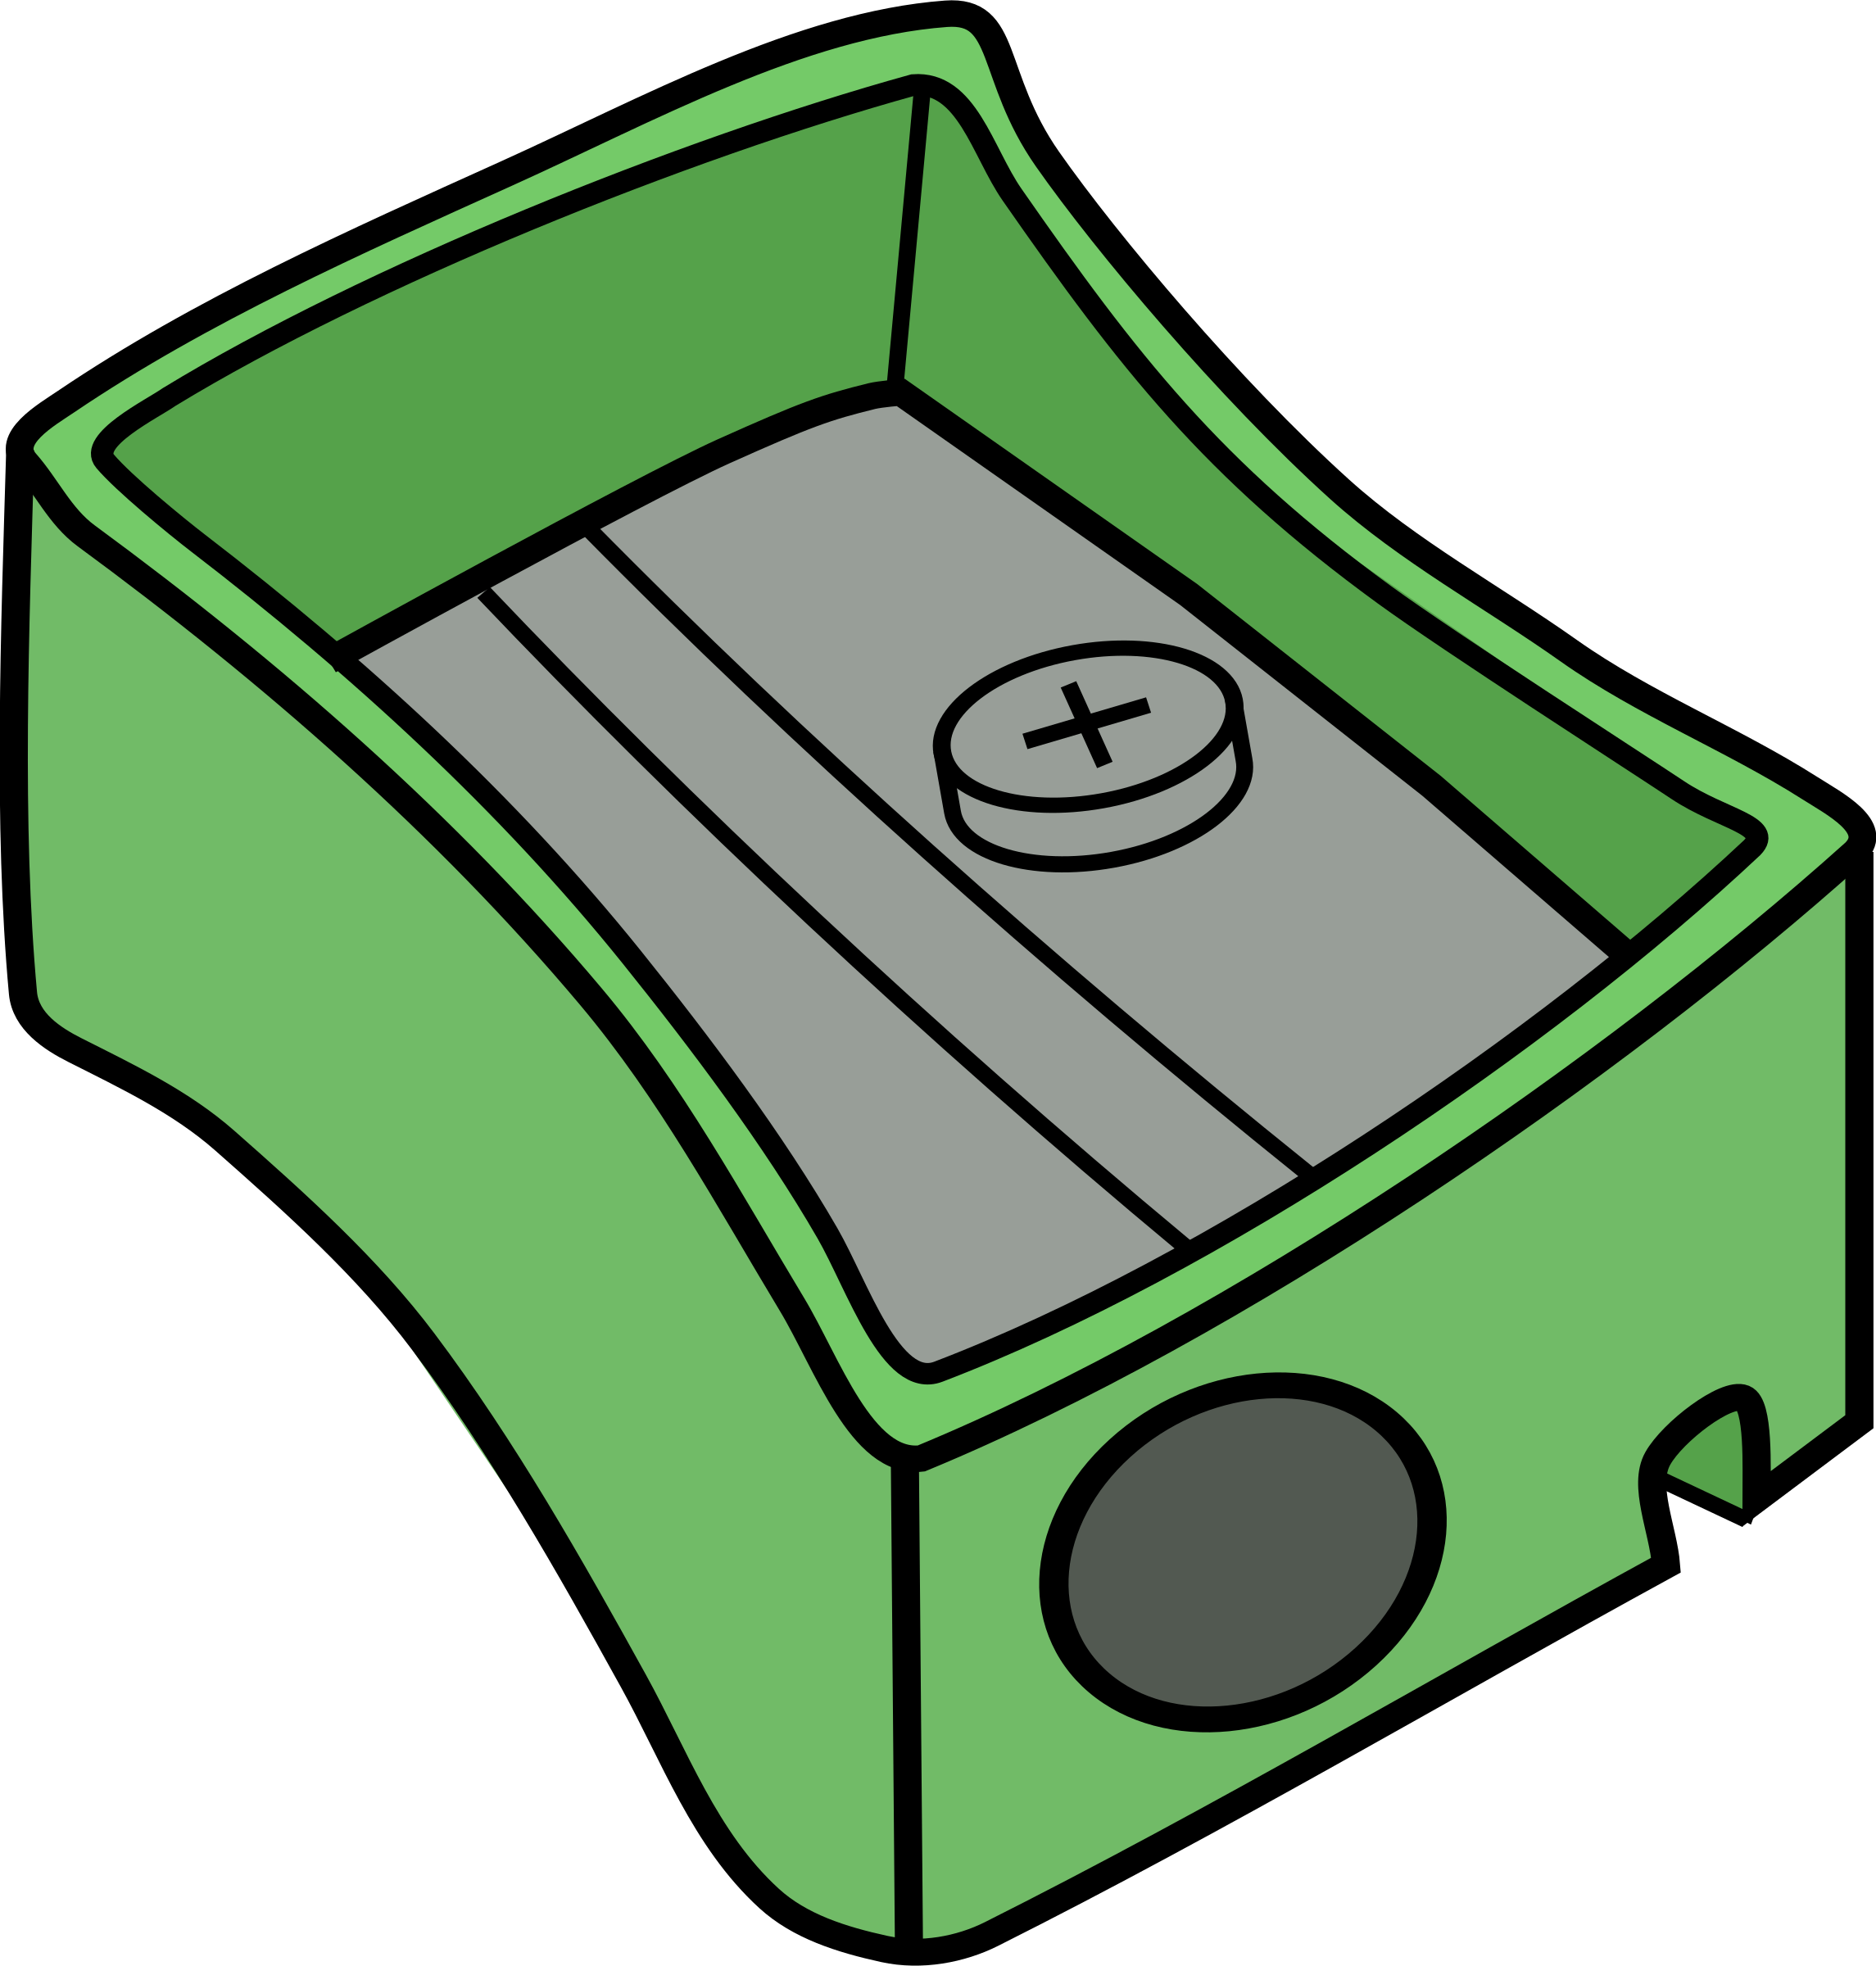 Sharpener clipart cheap. Green pencil big image